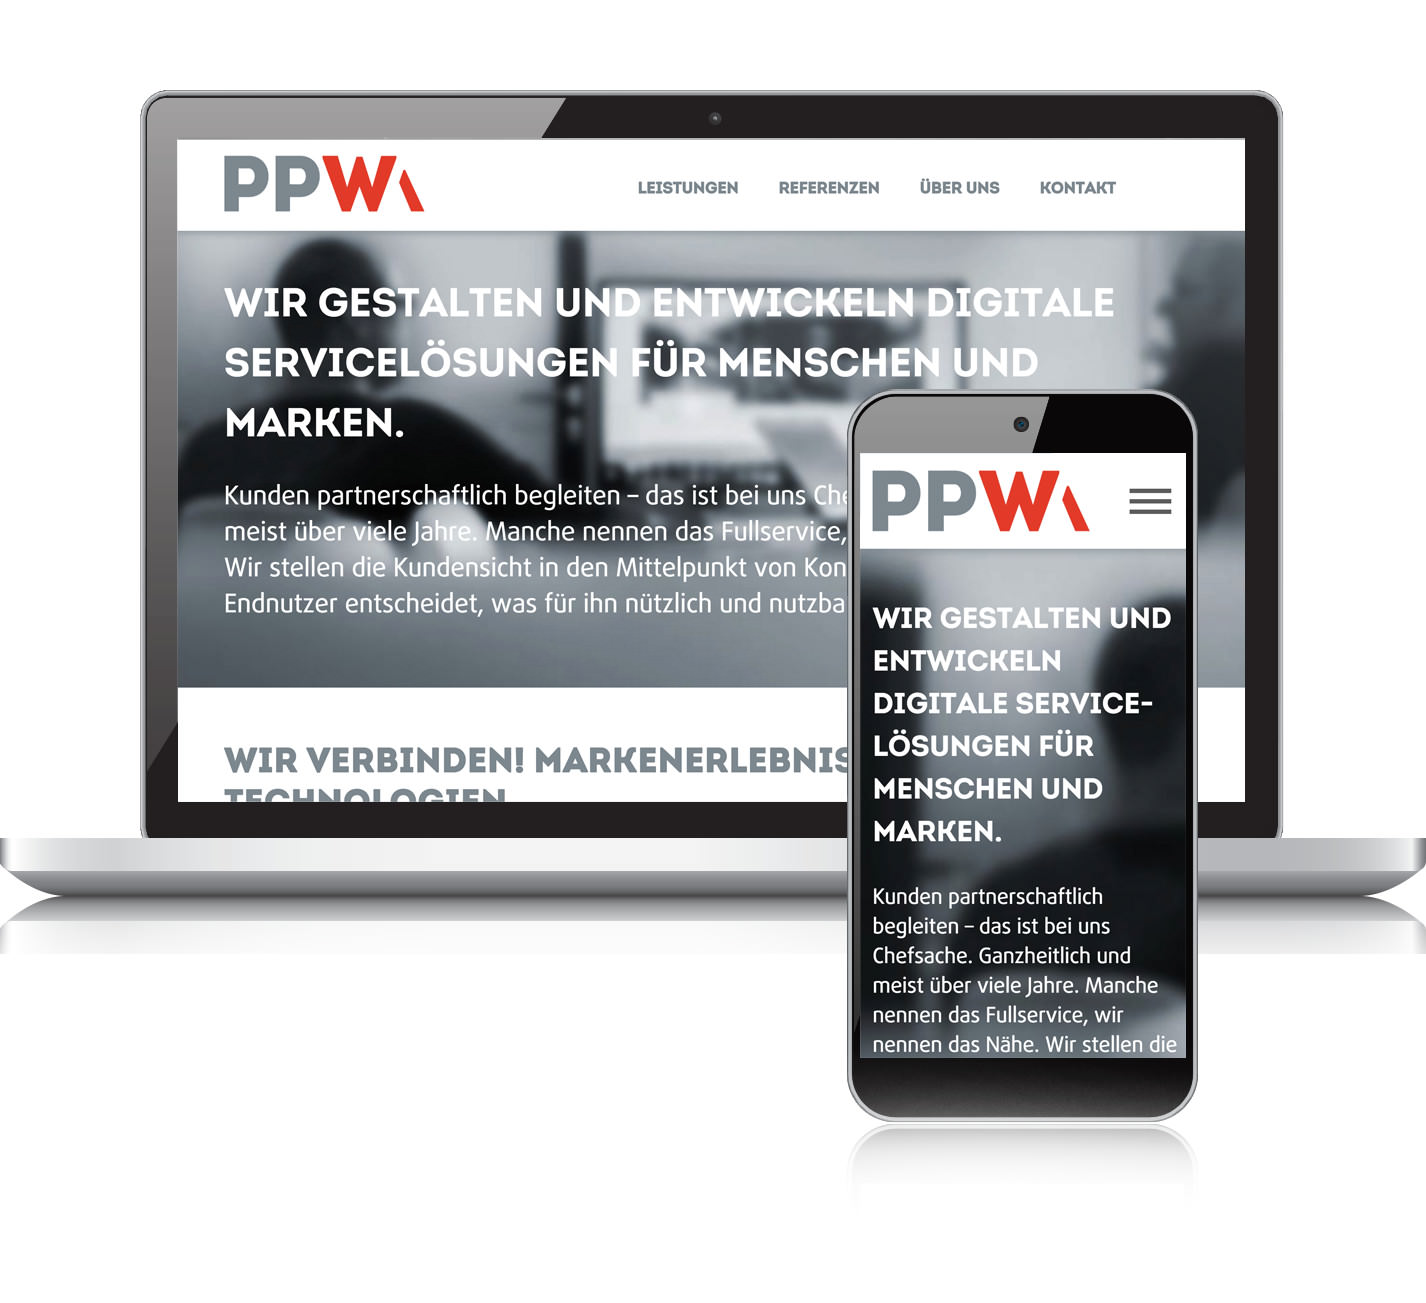 PPW Webseite